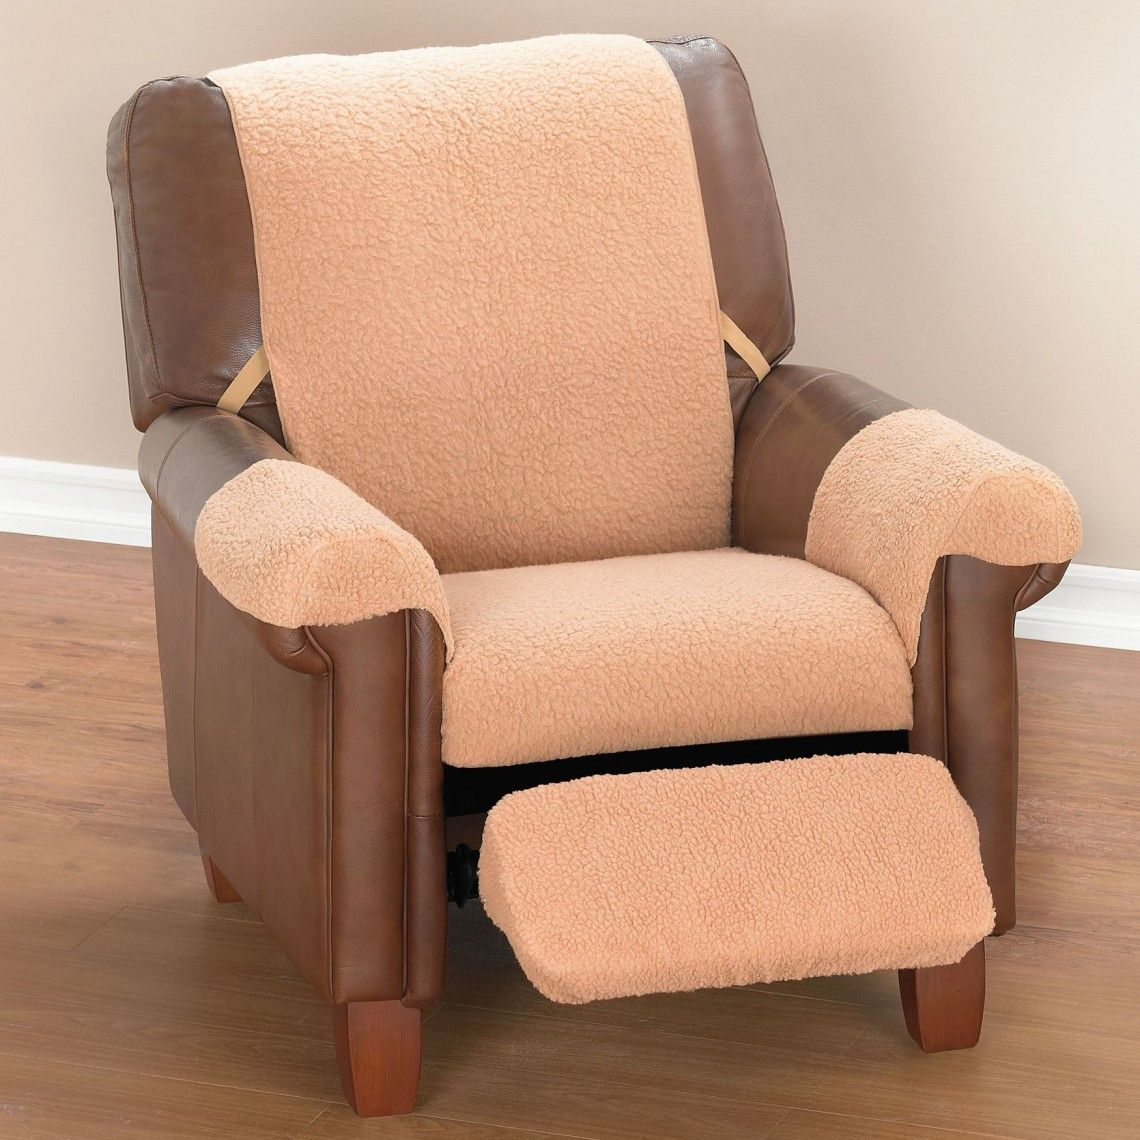 Stylish Recliner Chair Covers For Nursery Room Design Lazyboy Recliner  Oversized Rocker Recliner Stylish Recliners Lazy